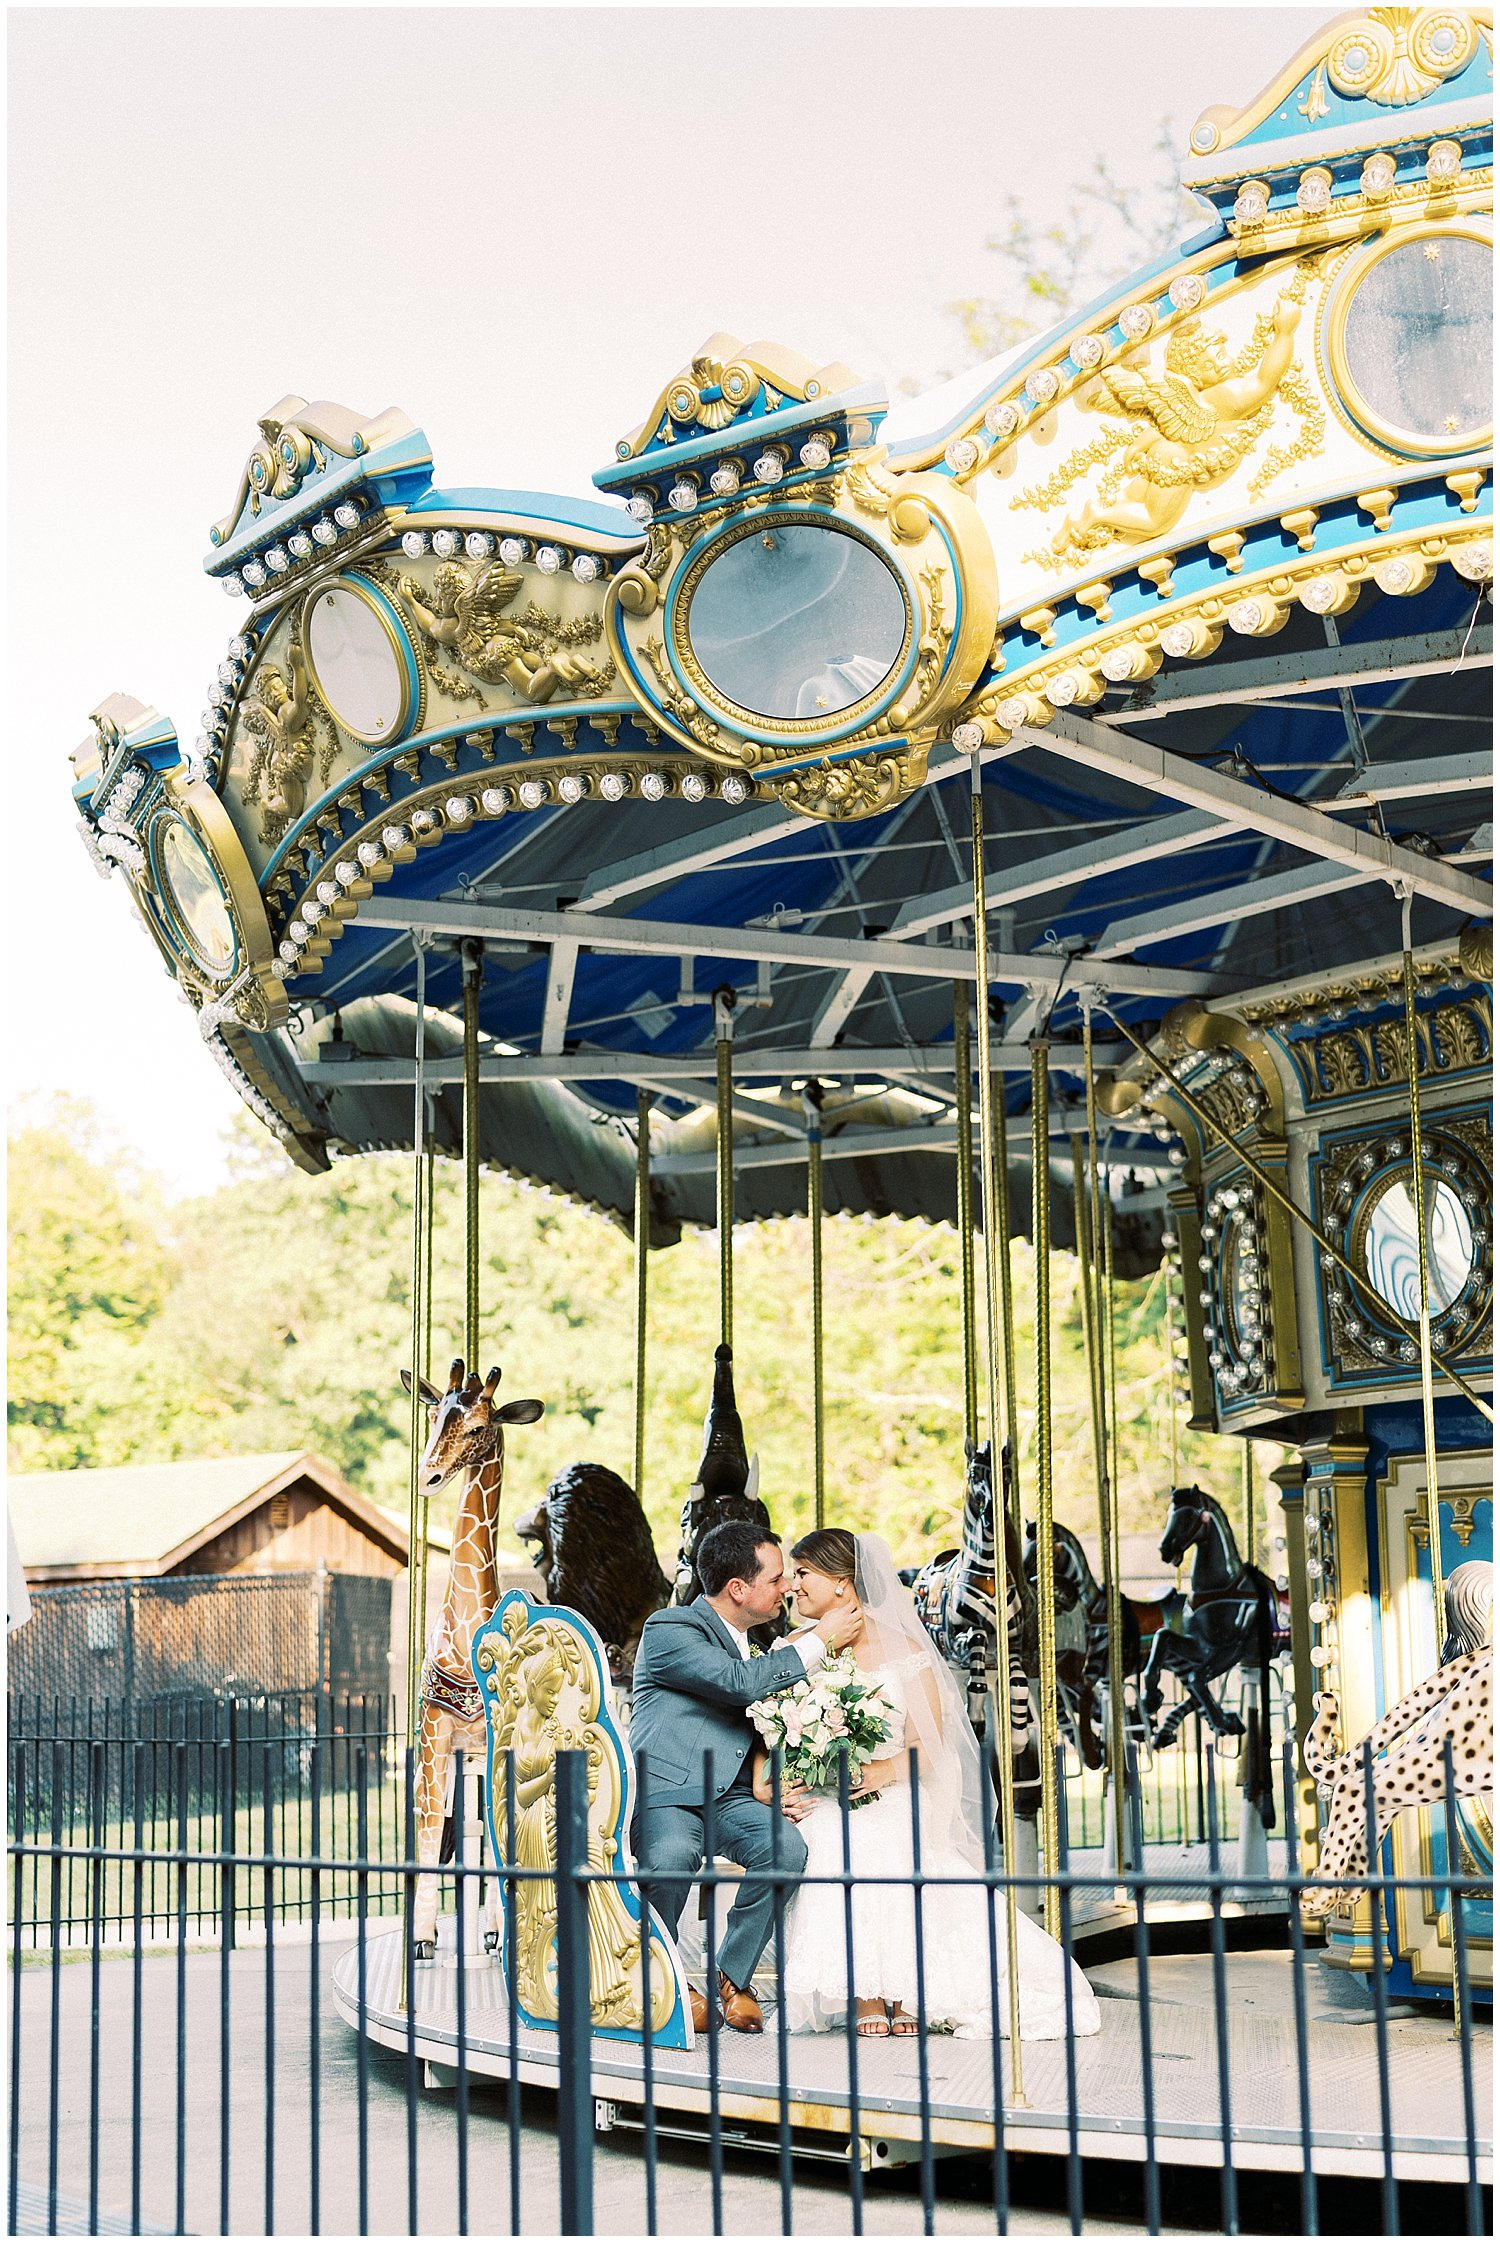 Wedding portraits at Maryland Zoo carousel